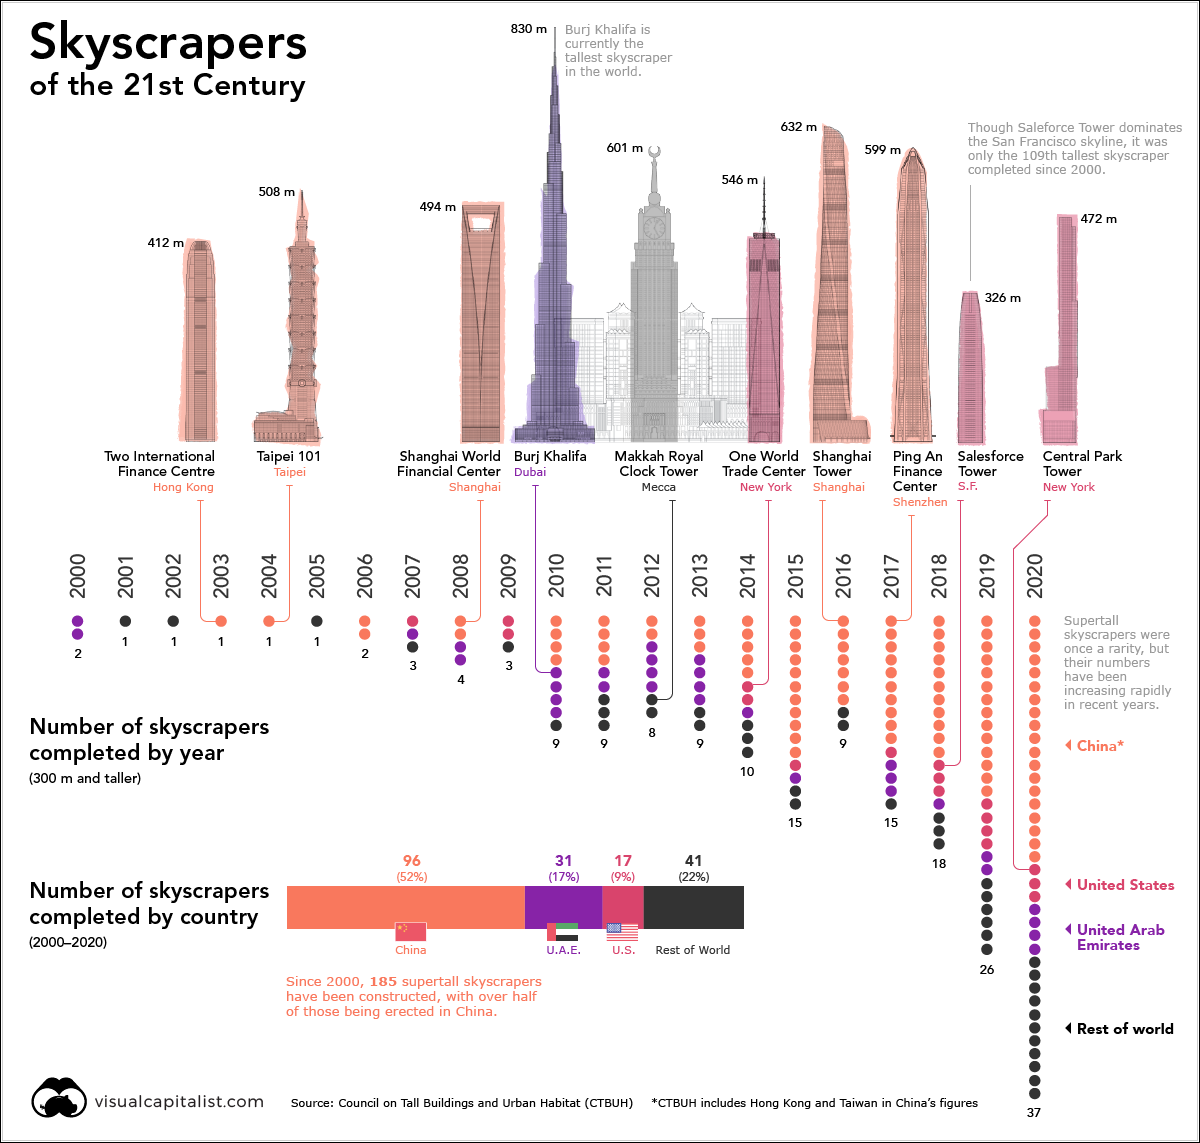 20 years of supertall skyscrapers